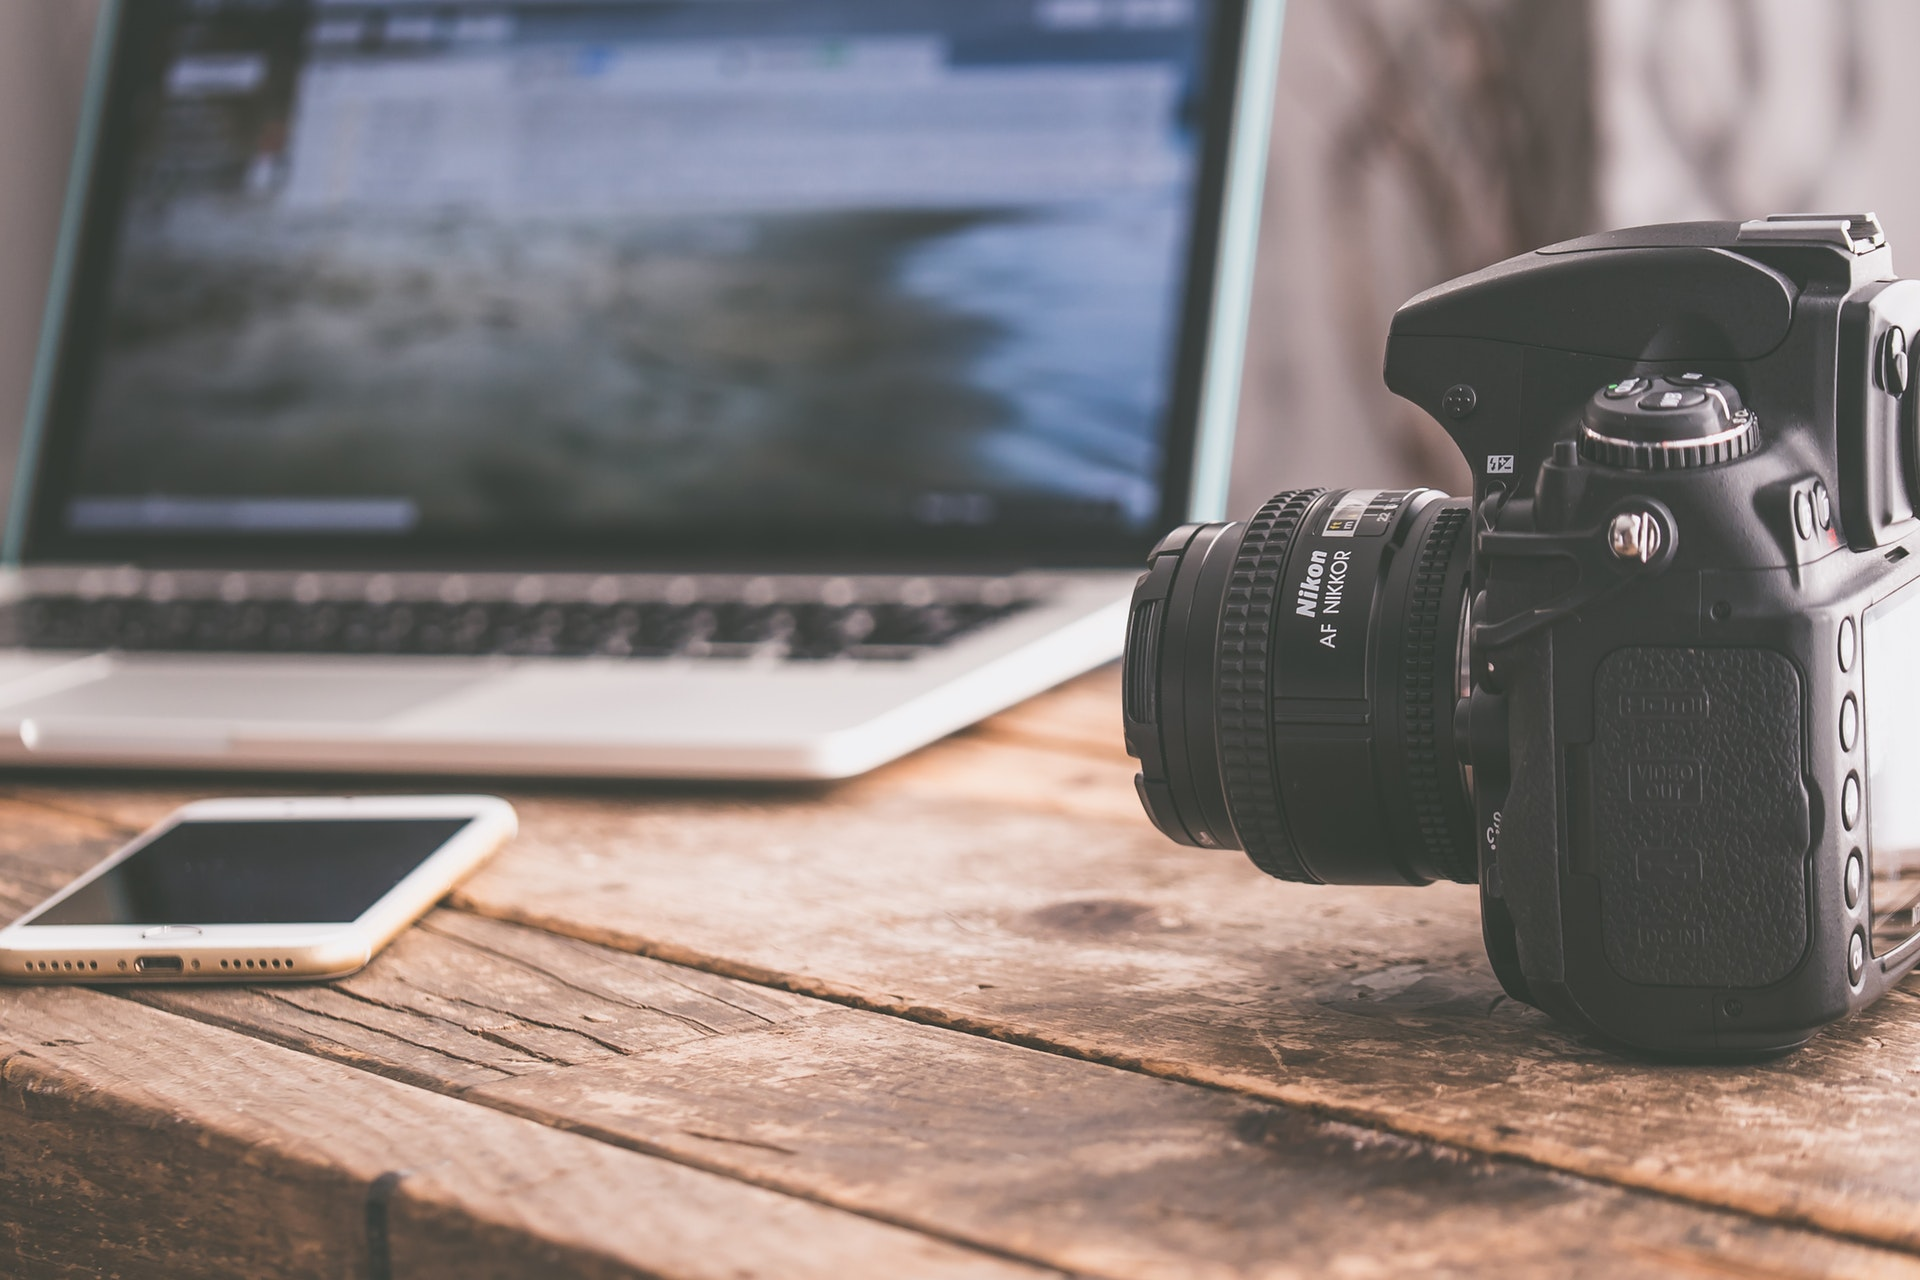 LIGHTS, CAMERA, AUDIO: HOW TO GET STARTED WITH VIDEO